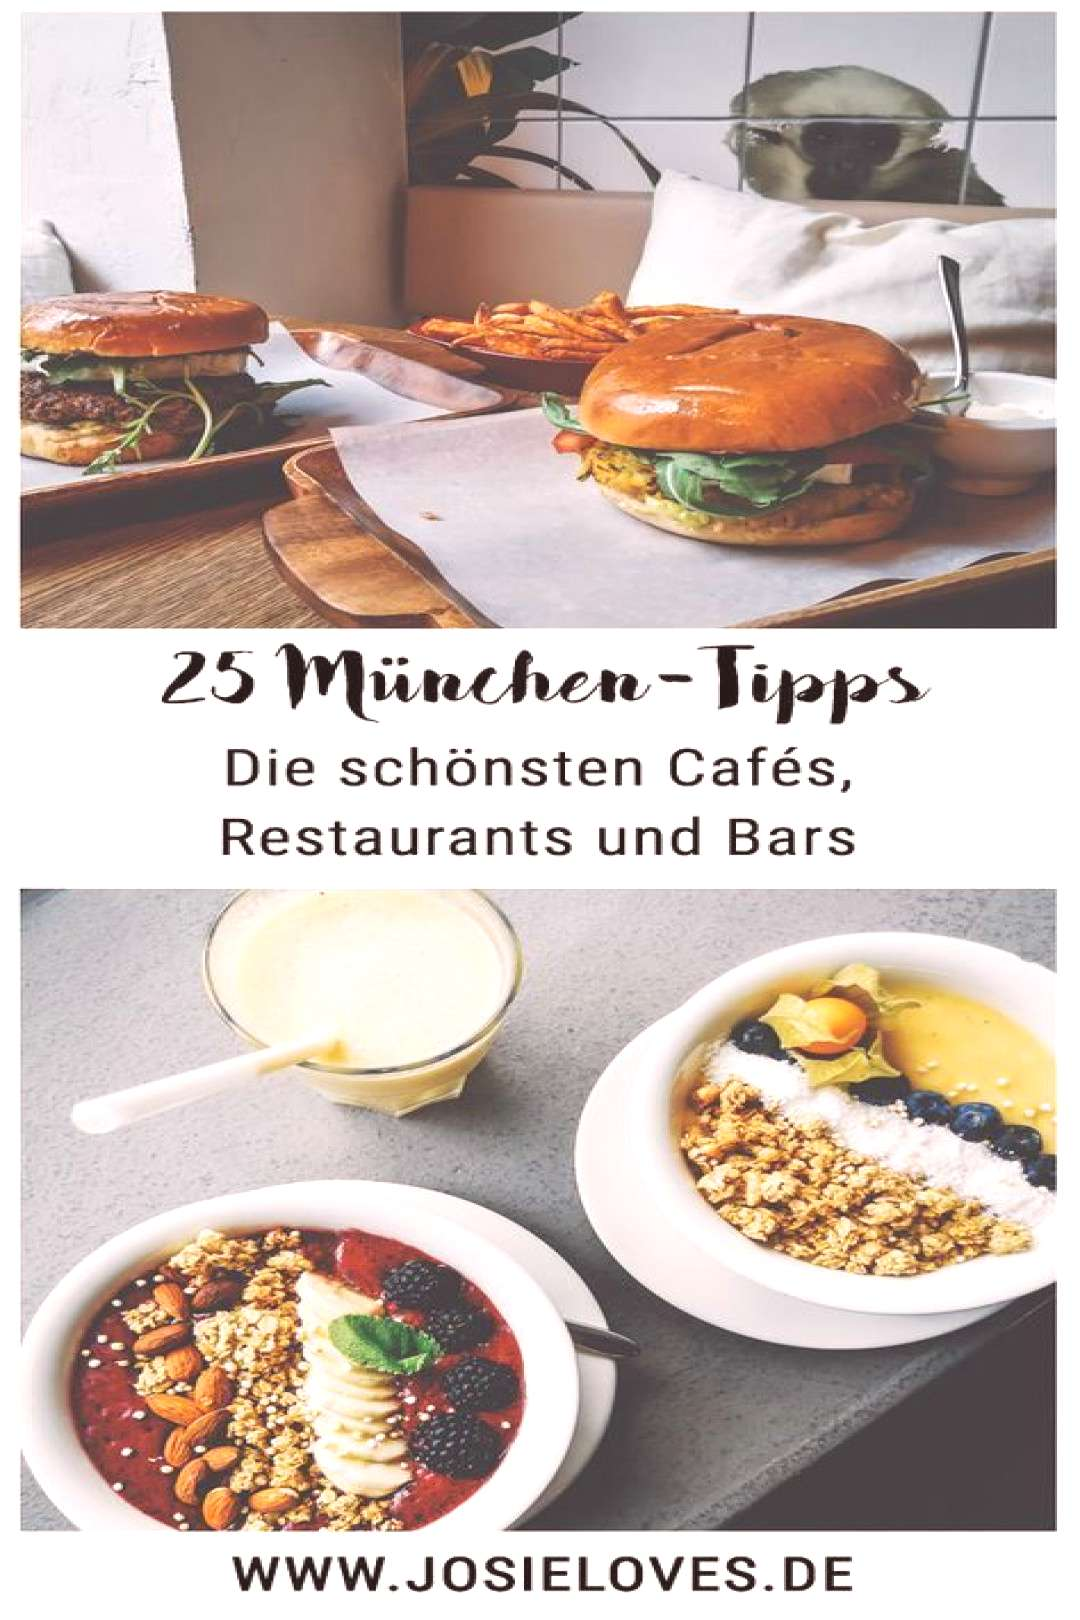 Munich tips: My favorite restaurants, cafes and bars - Josie Loves -  25 Munich tips: The most beau